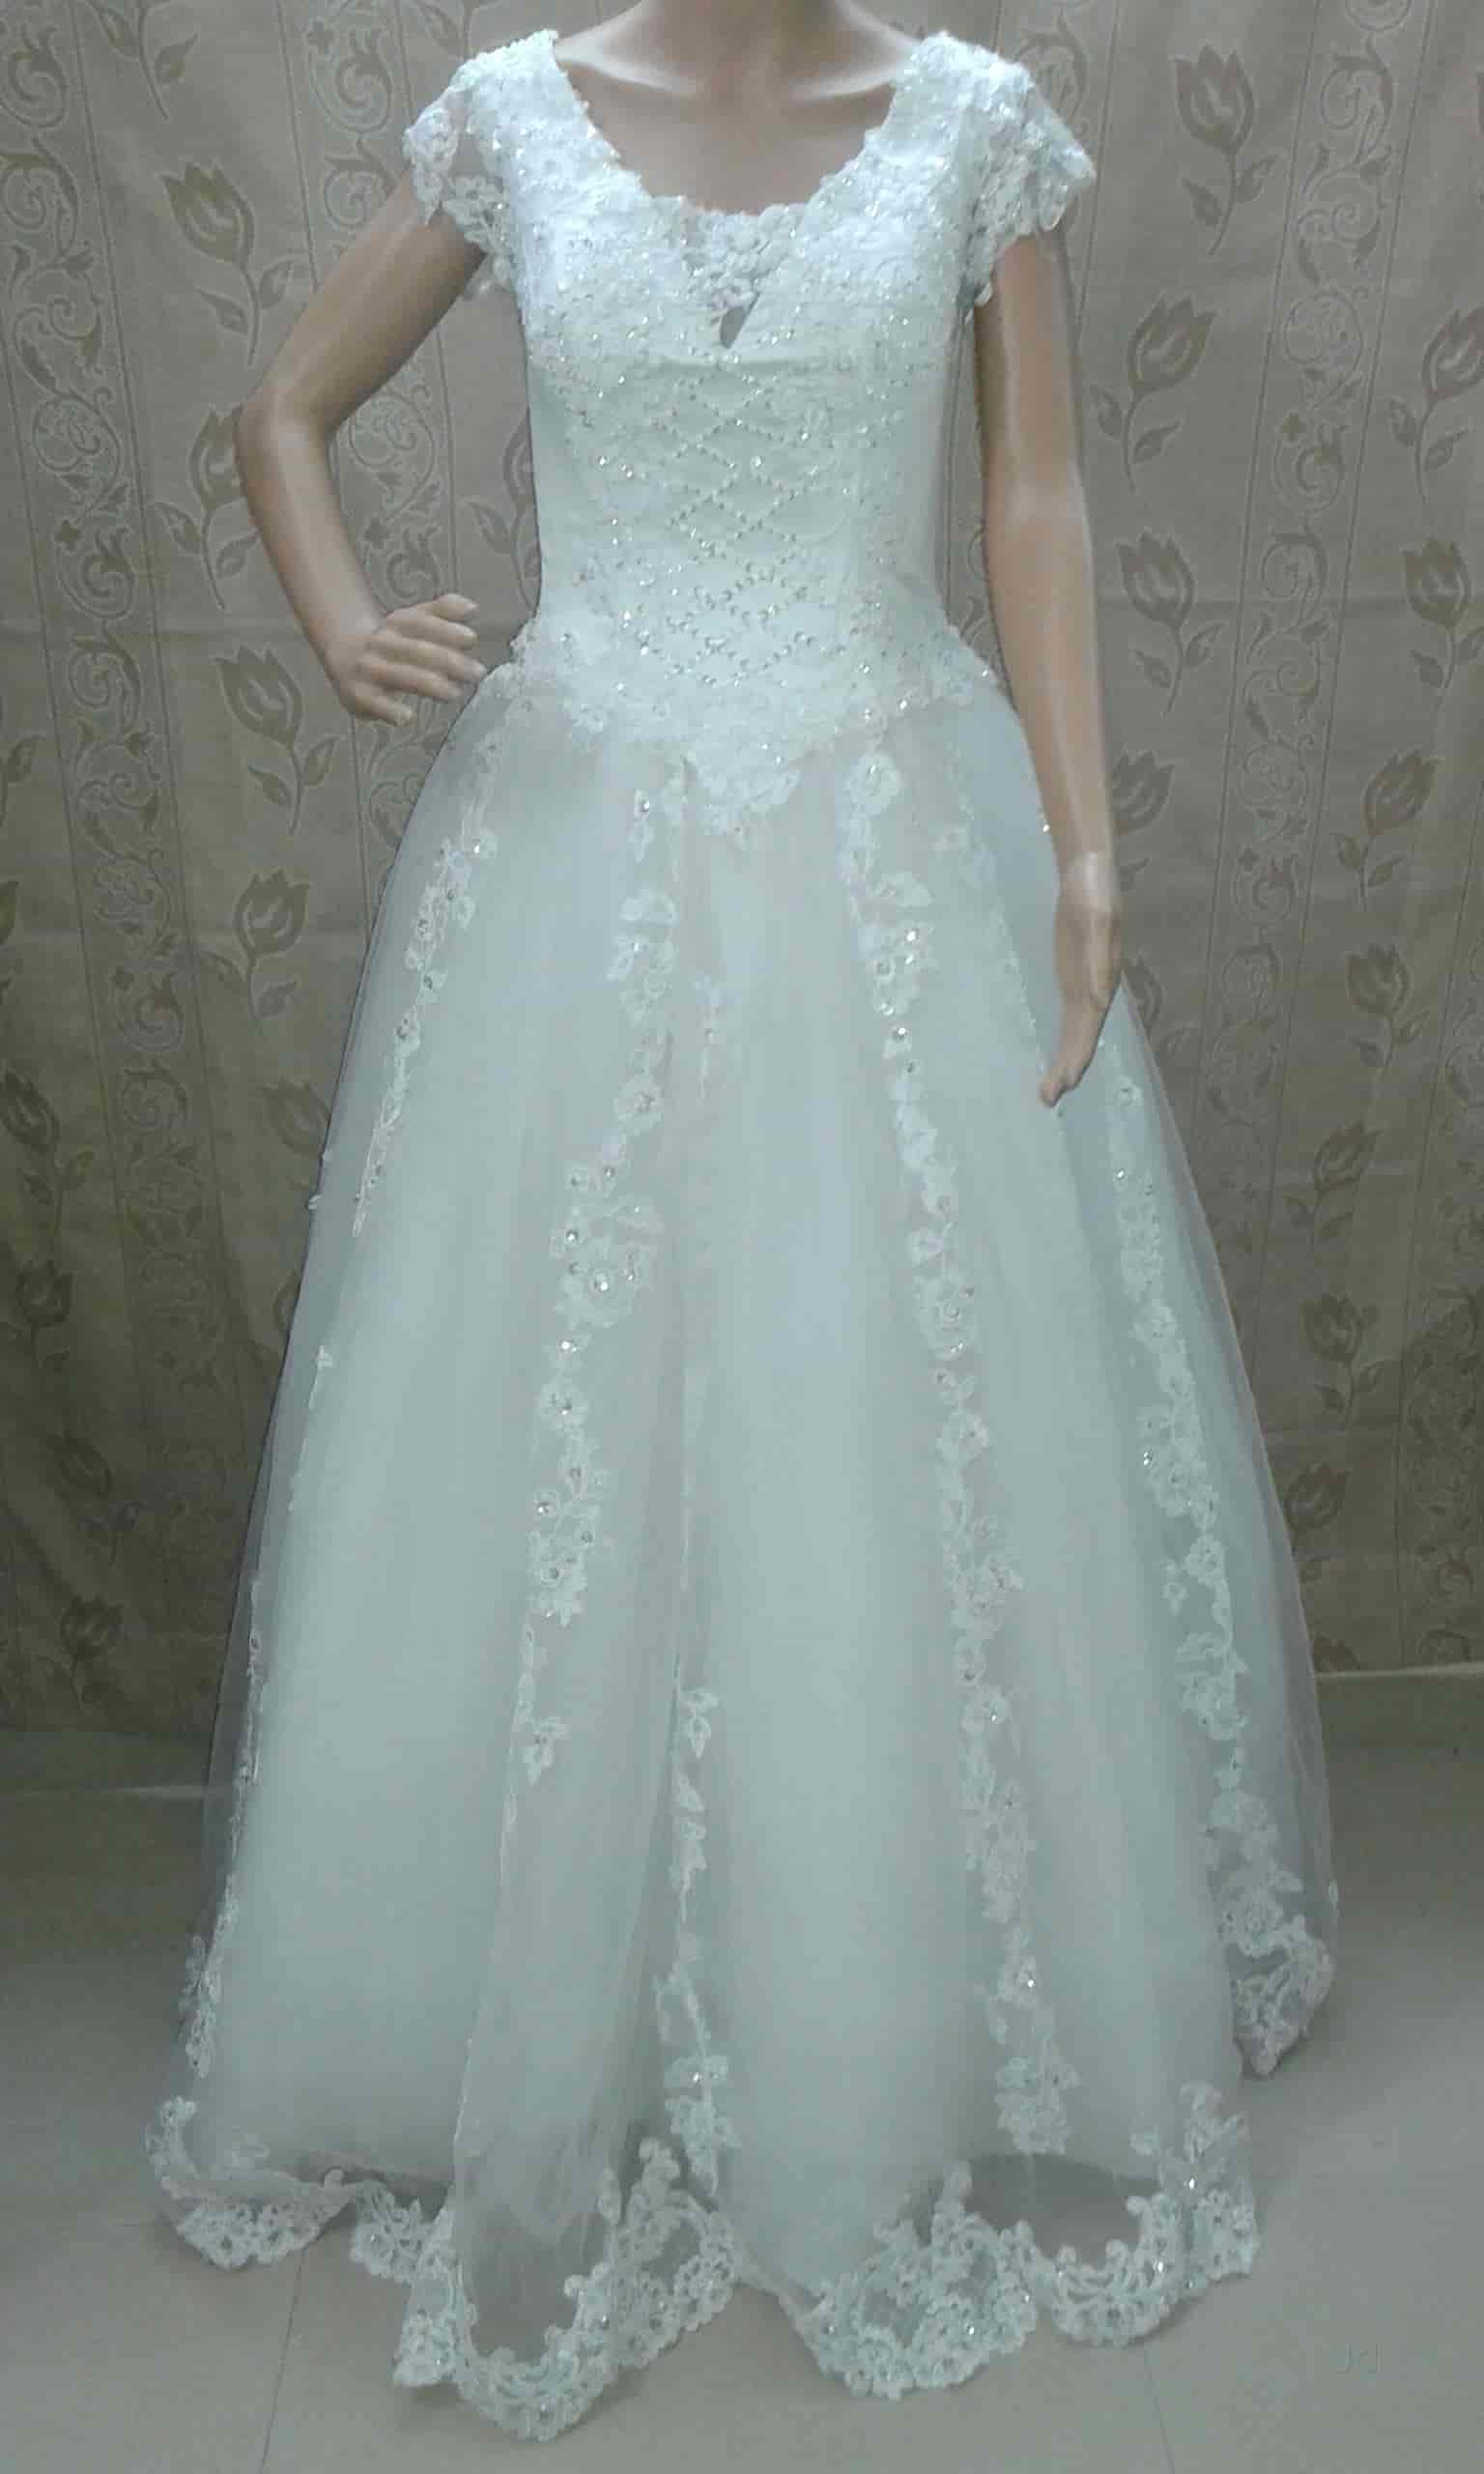 Nisha David Bridal Collection, Malad West - Gown Manufacturers in ...